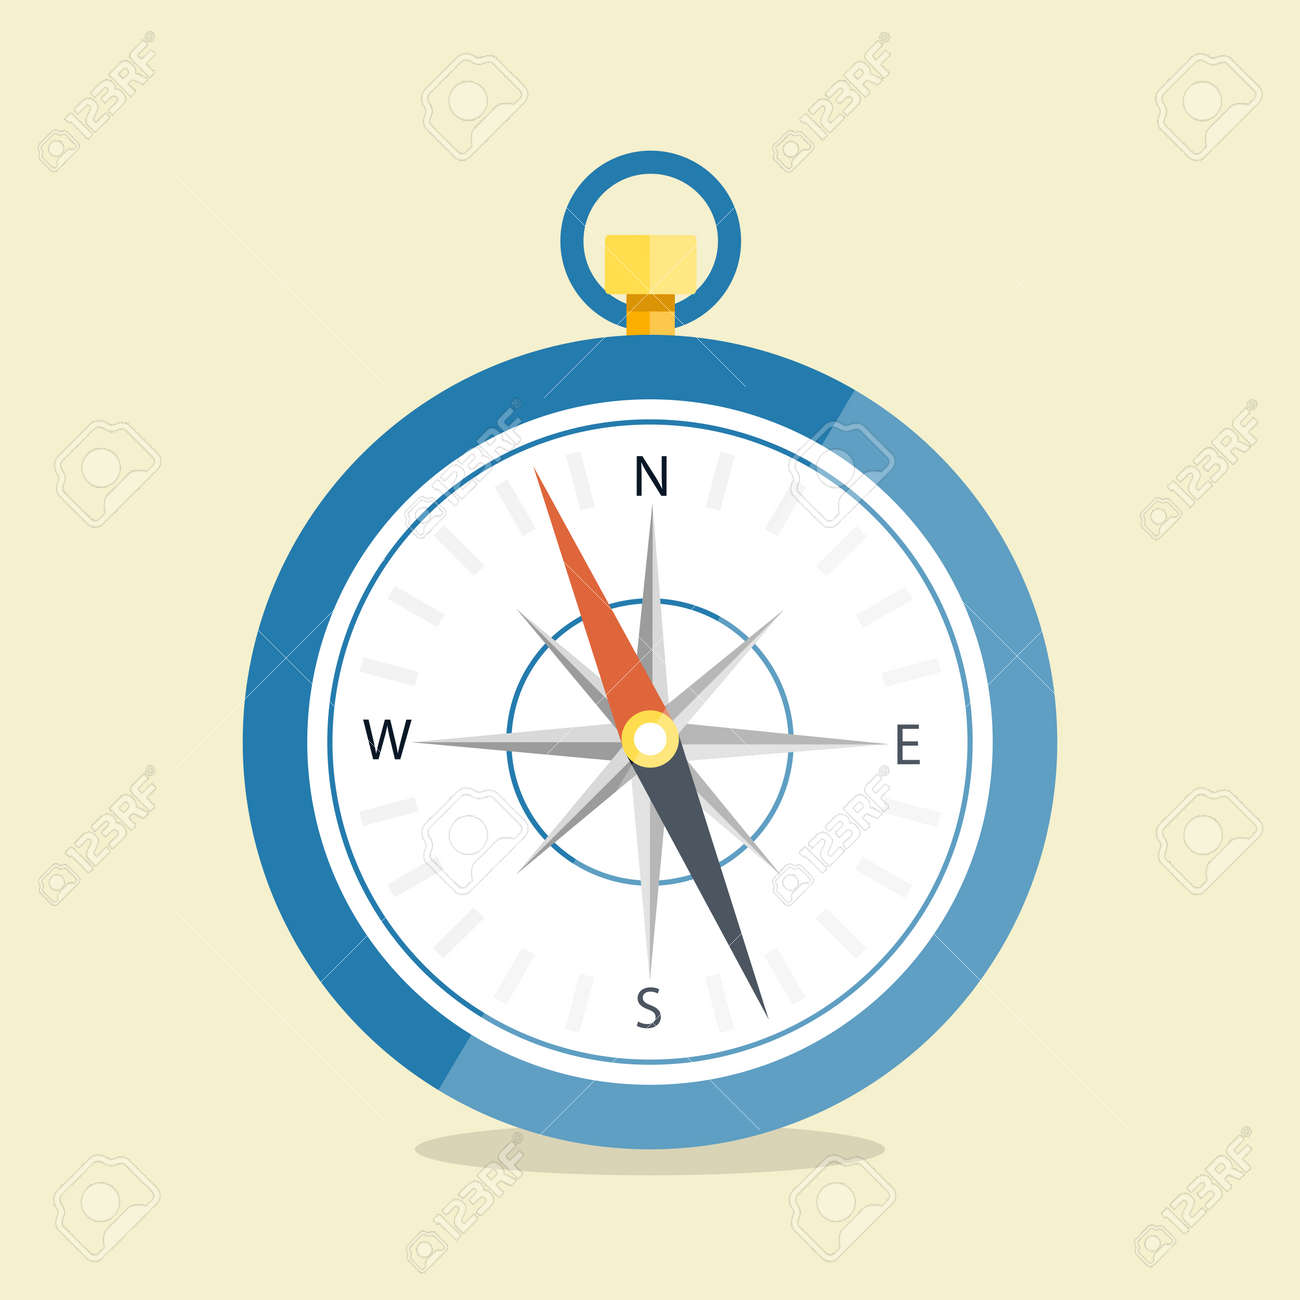 Vector illustration. Compass are isolated on a simple background. Flat style - 169208318